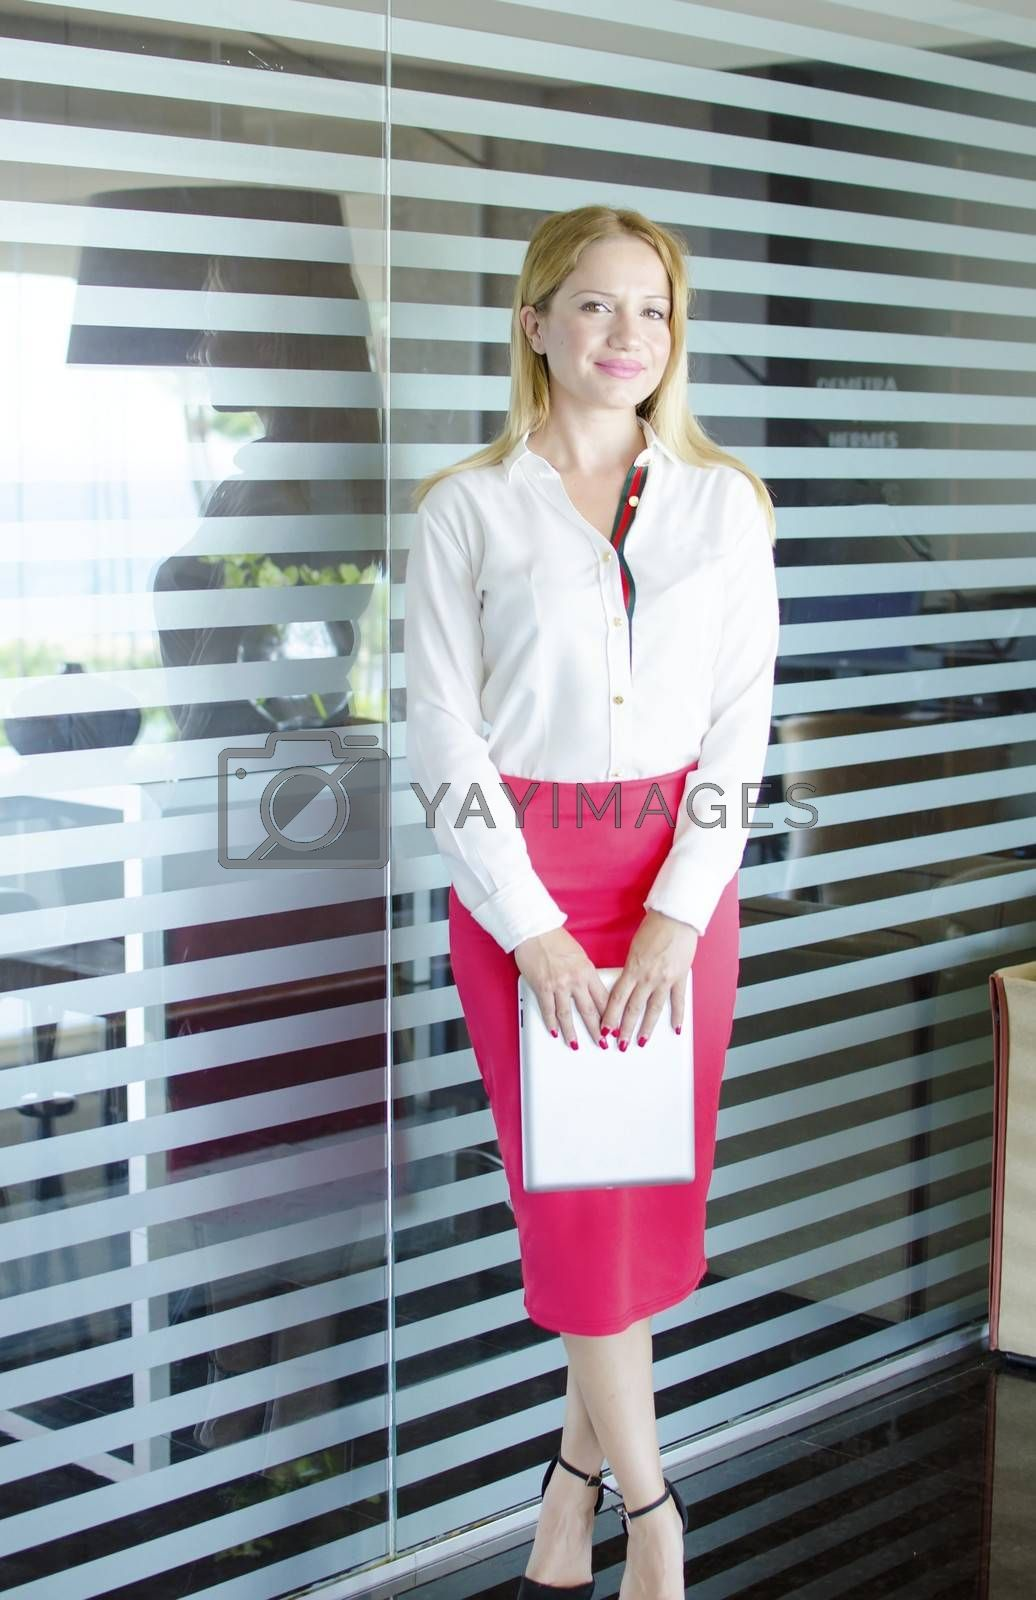 One modern beautiful young blonde white caucasian professional business woman smiling, looking confident, holding a tablet, wearing a work office white shirt and red pencil skirt, standing in a conference meeting room alone with big windows on background.